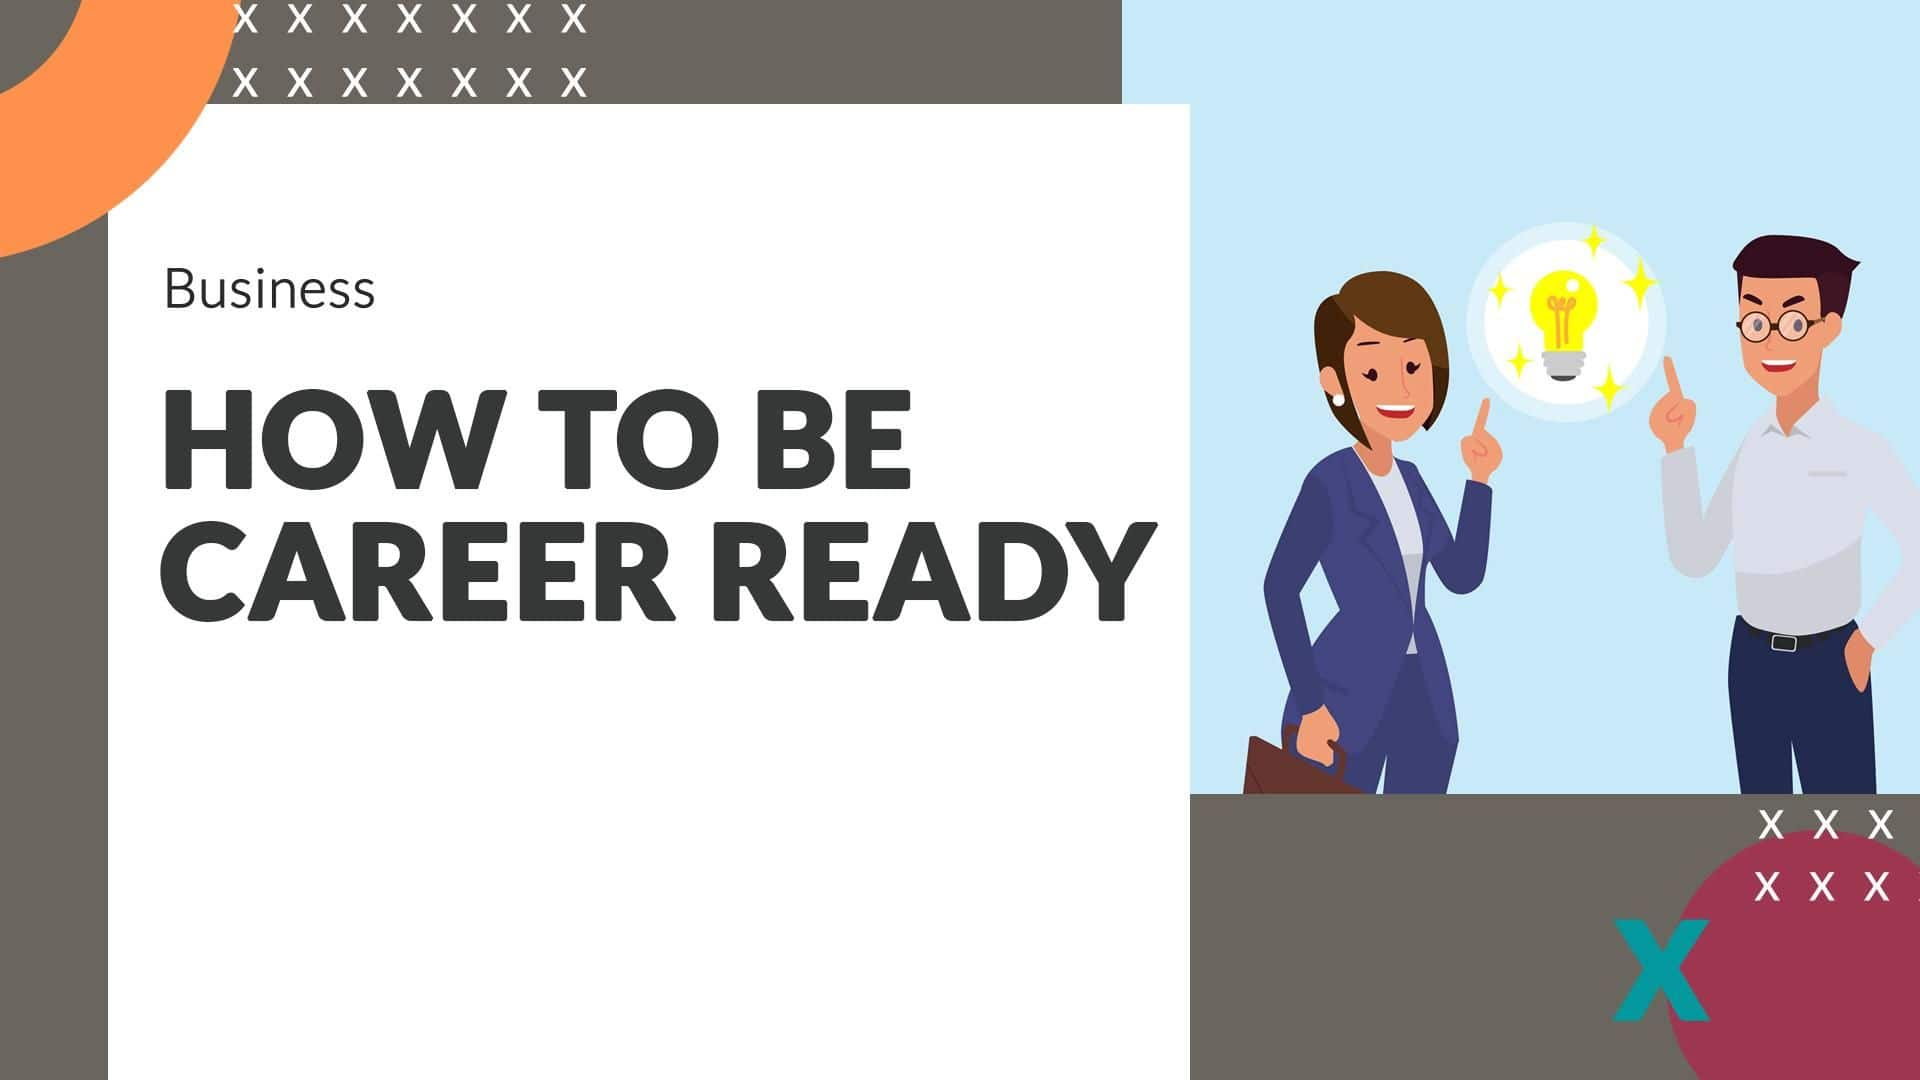 How To Be Career Ready And Skills You Need To Grow Professionally - India.com